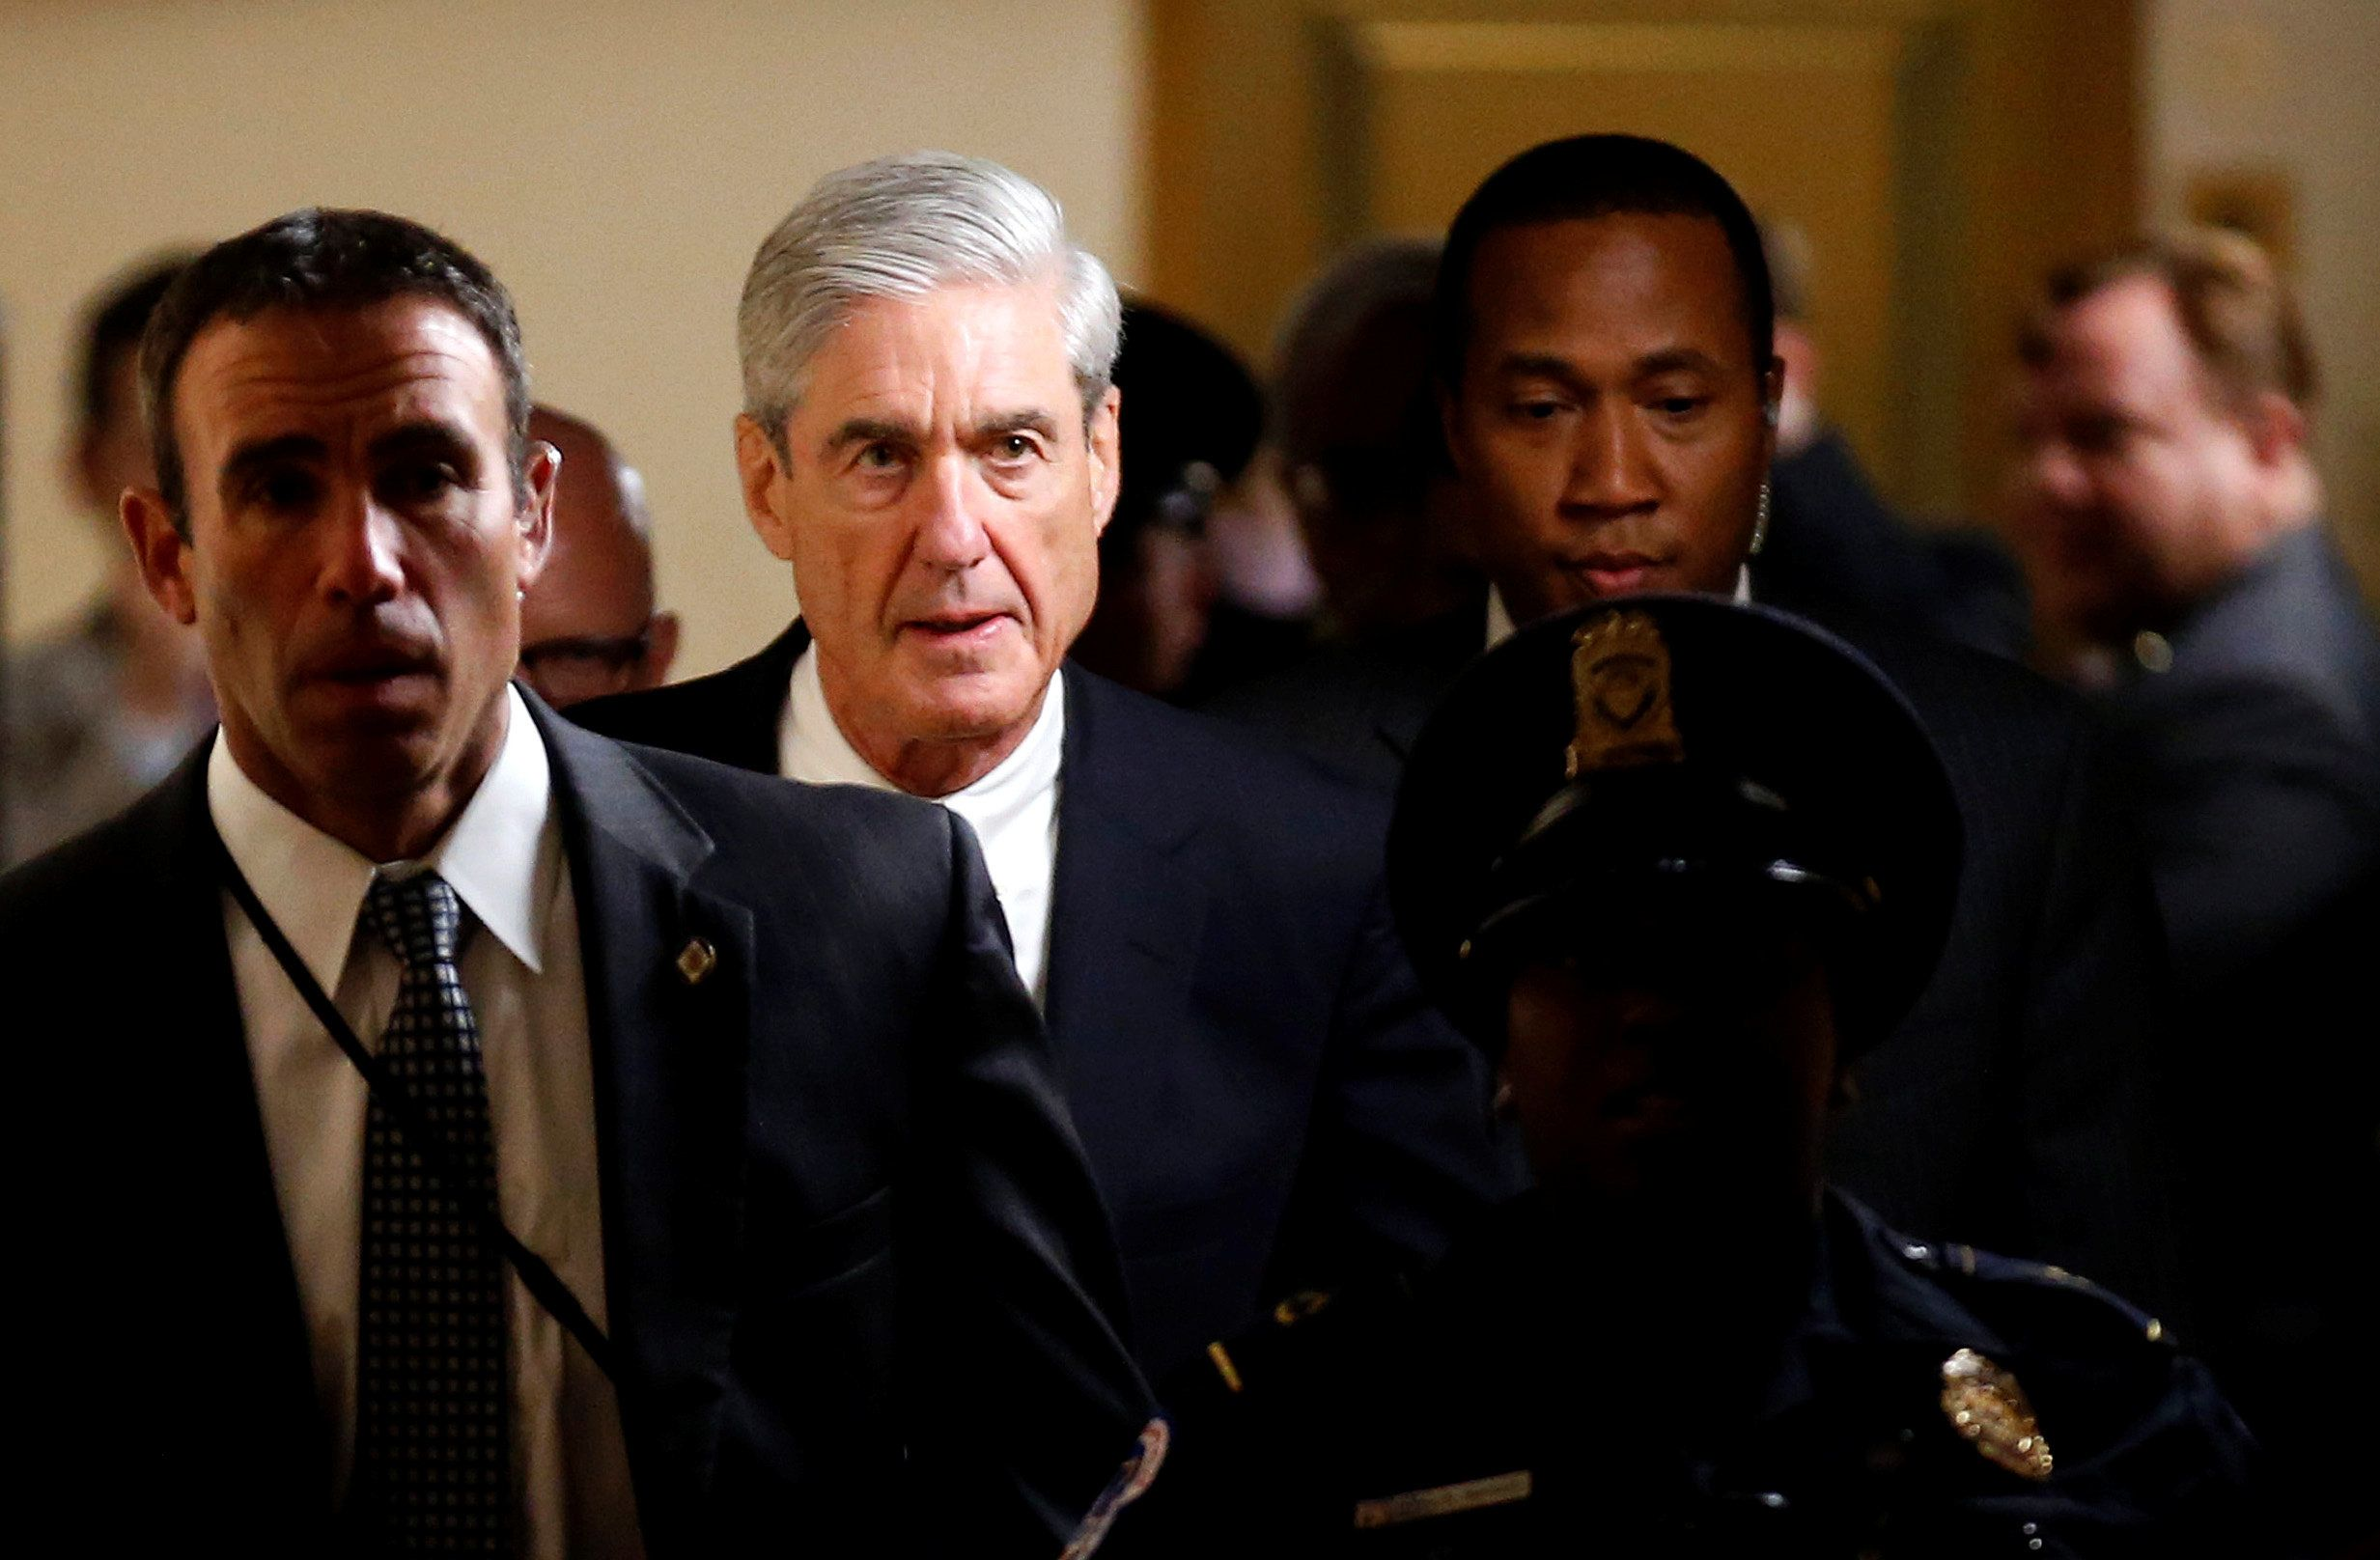 Special Counsel Robert Mueller departs after briefing members of the U.S. Senate on his investigation into potential collusion between Russia and the Trump campaign on Capitol Hill in Washington, U.S., June 21, 2017.   REUTERS/Joshua Roberts